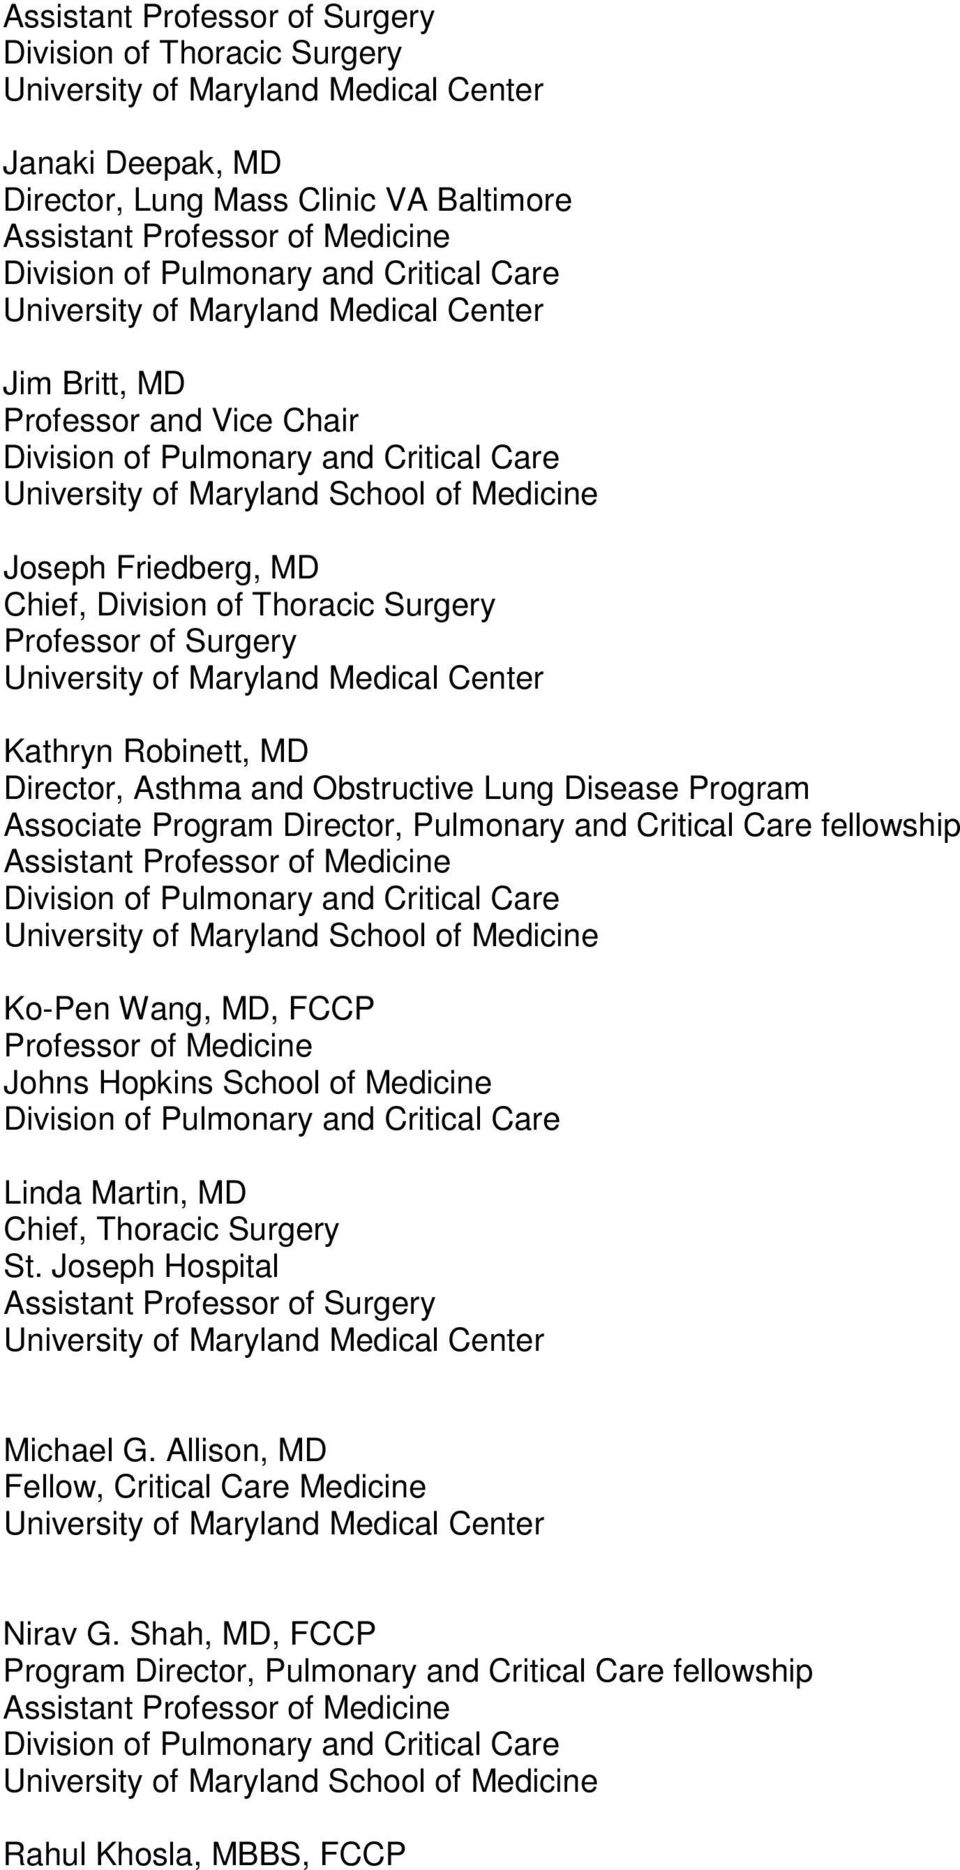 Interventional Pulmonology Course and Hands-On Workshop - PDF